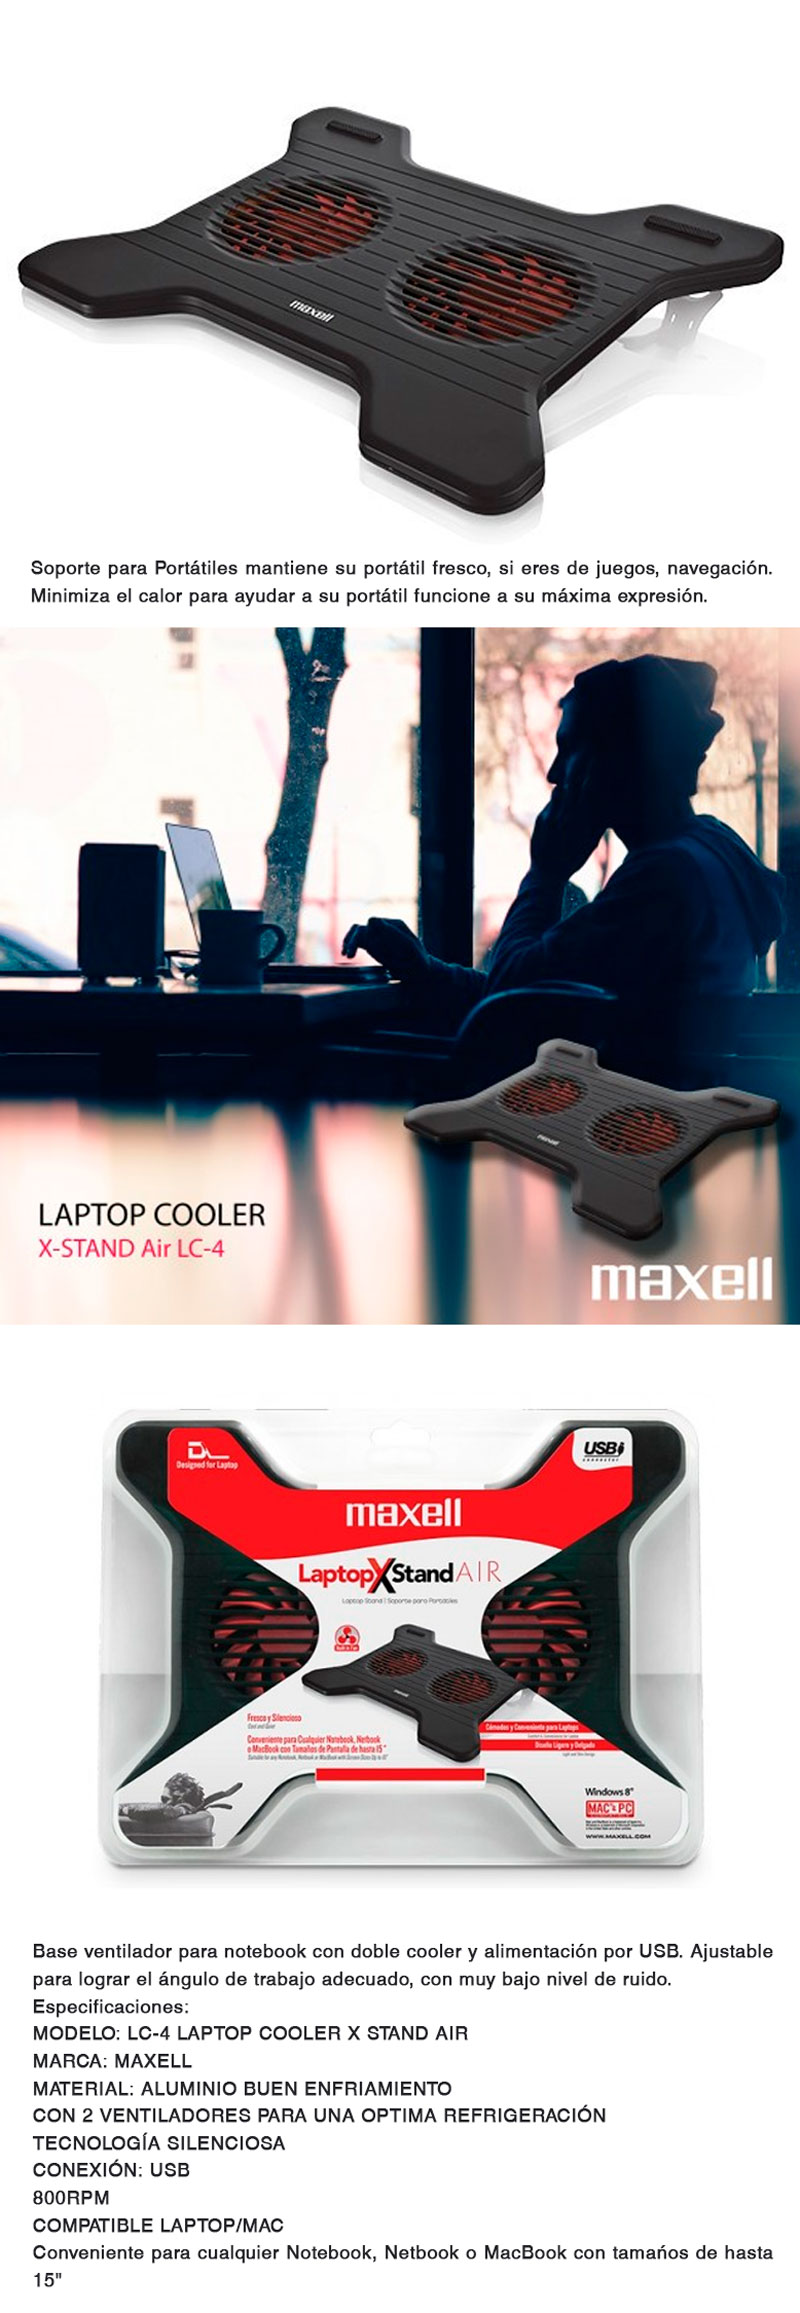 Maxell X-Stand Air LC-4 Laptop Cooler Cooling Pad